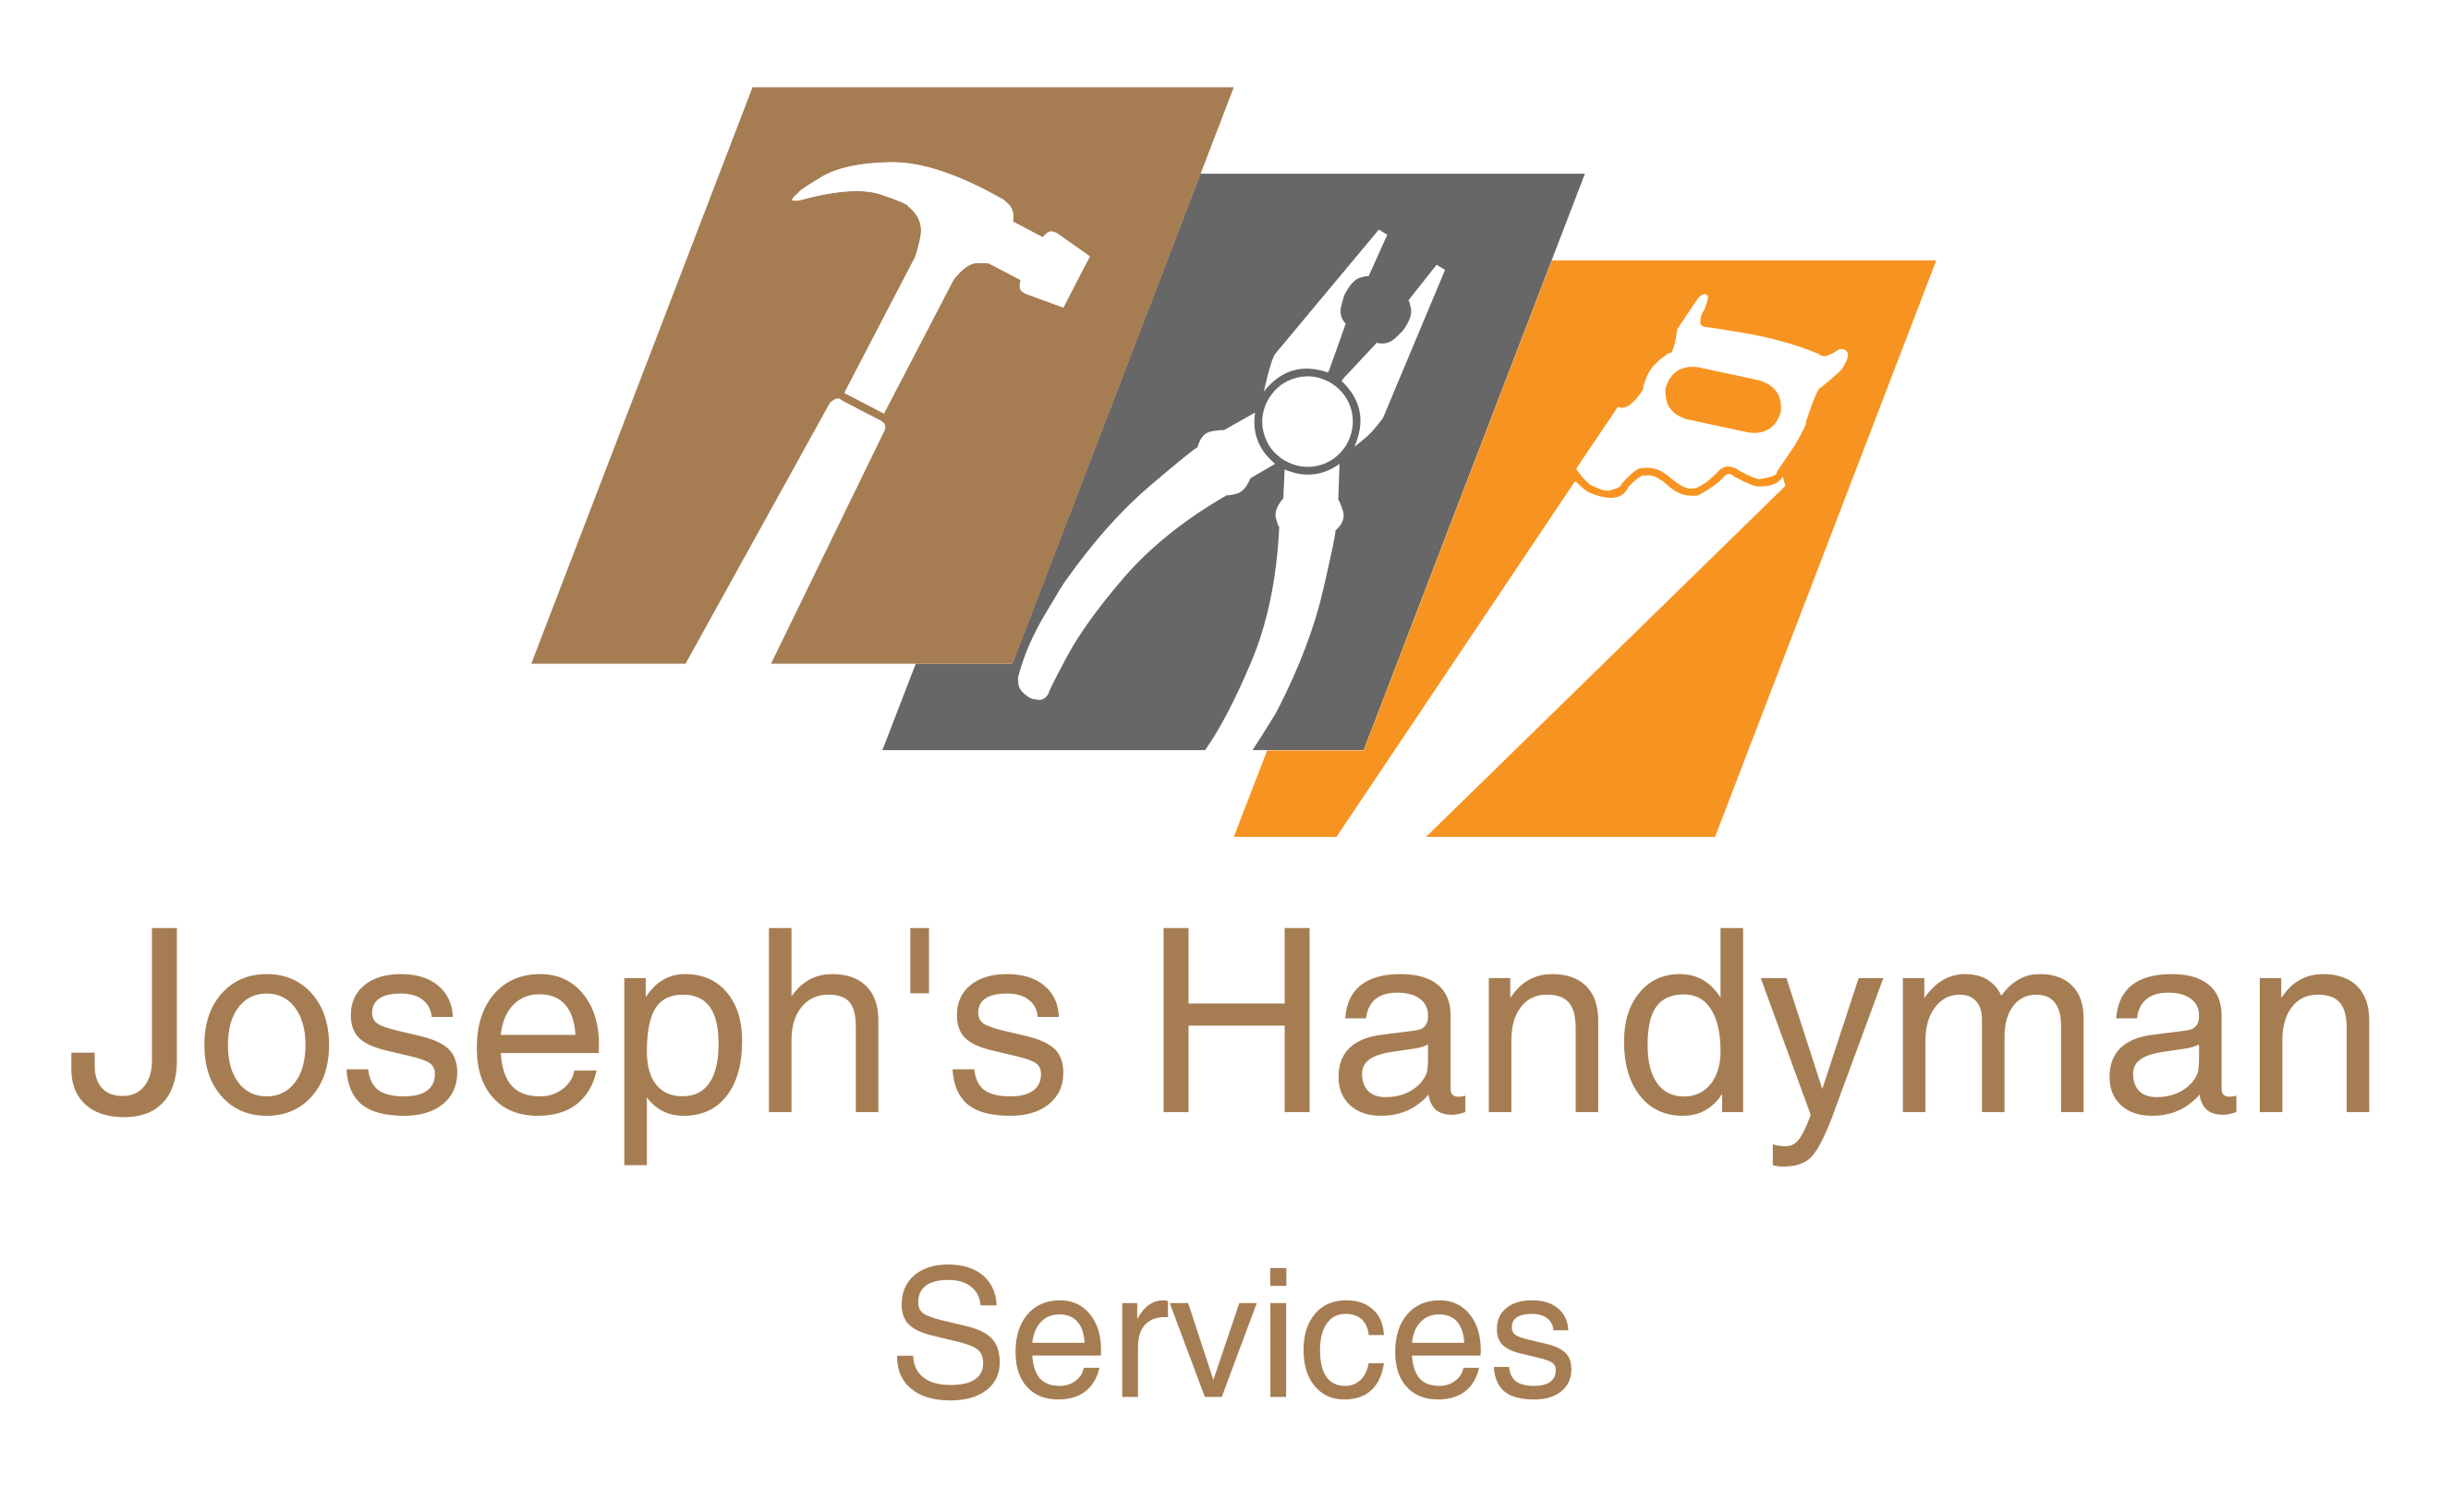 Joseph's Handyman Services - Residential Remodeling